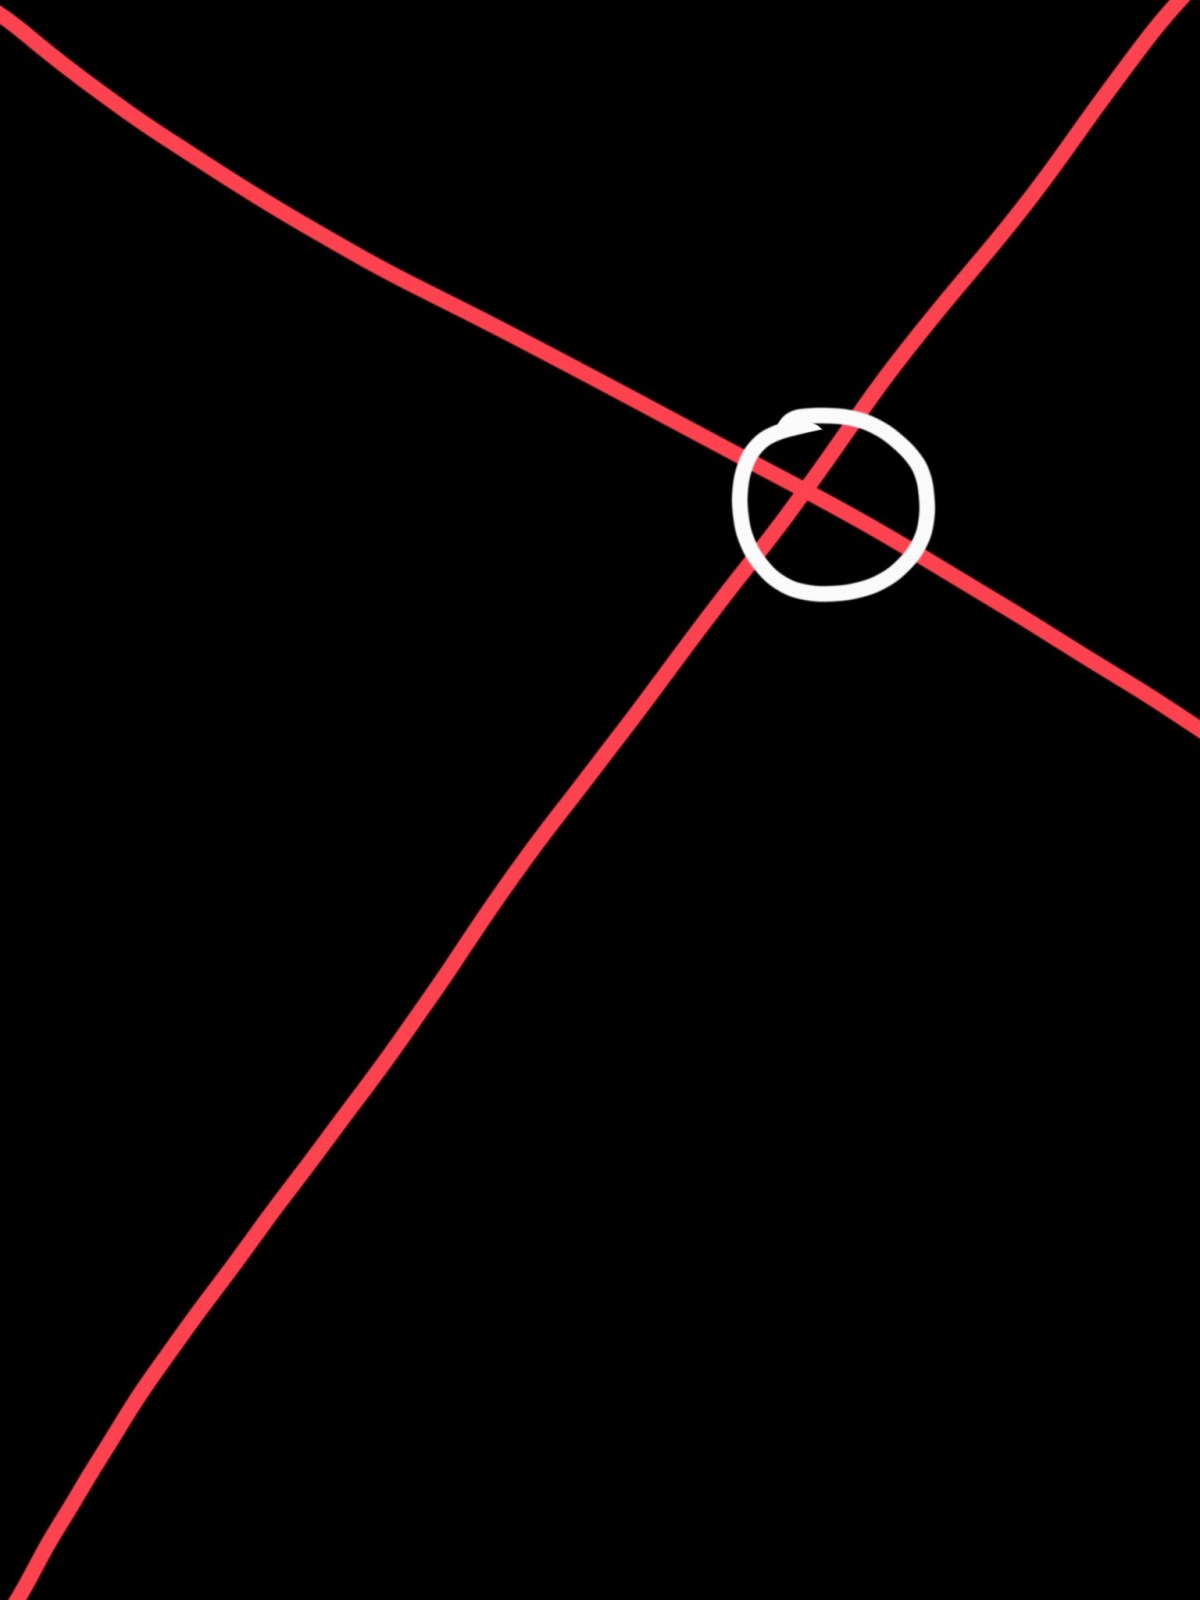 The golden rectangle (or triangle). Place your subject at the intersection of the red lines, with the white circle.